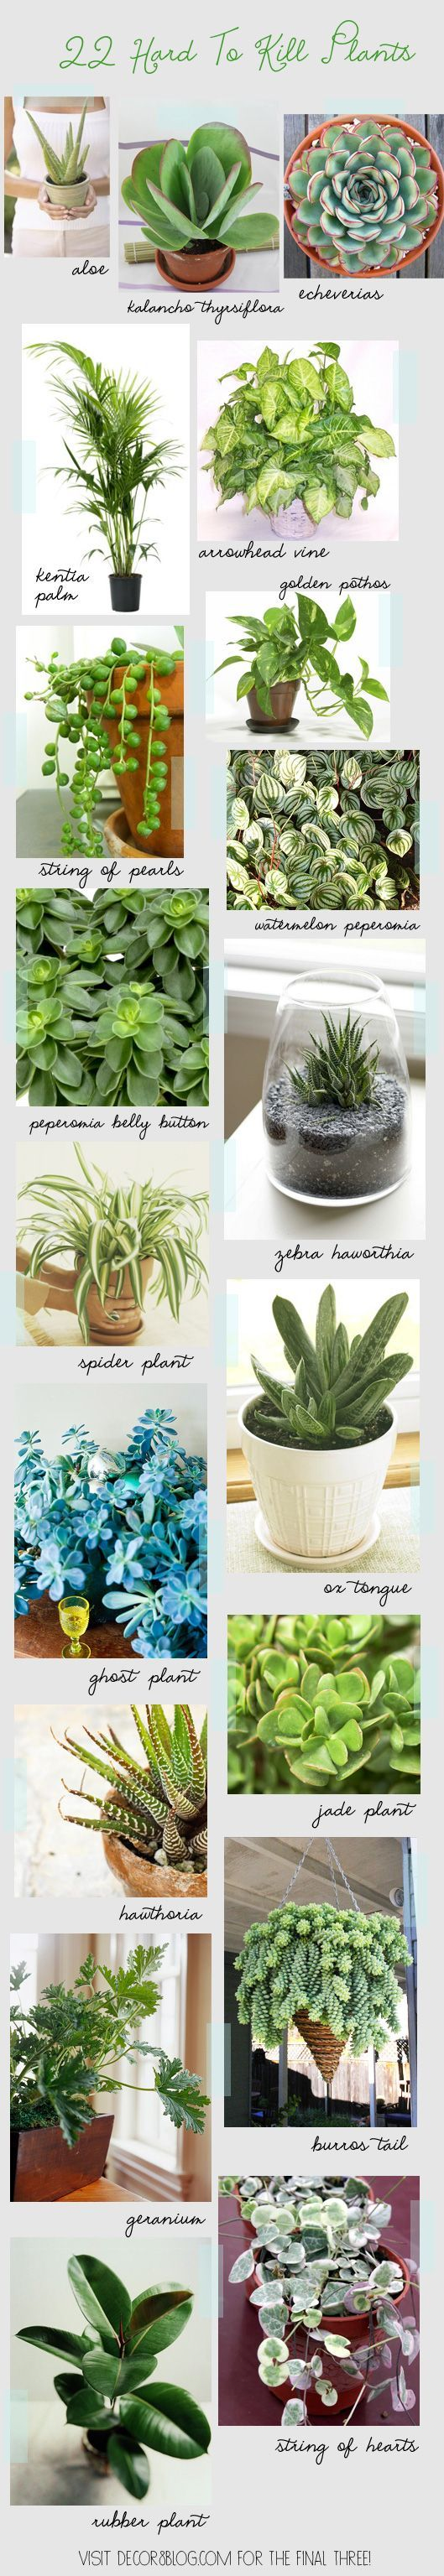 22 Hard To Kill Houseplants with links and if you visit decor8, you can see the remaining 3 plants not shown here: http://decor8blog.com/2014/01/16/22-hard-to-kill-houseplants/